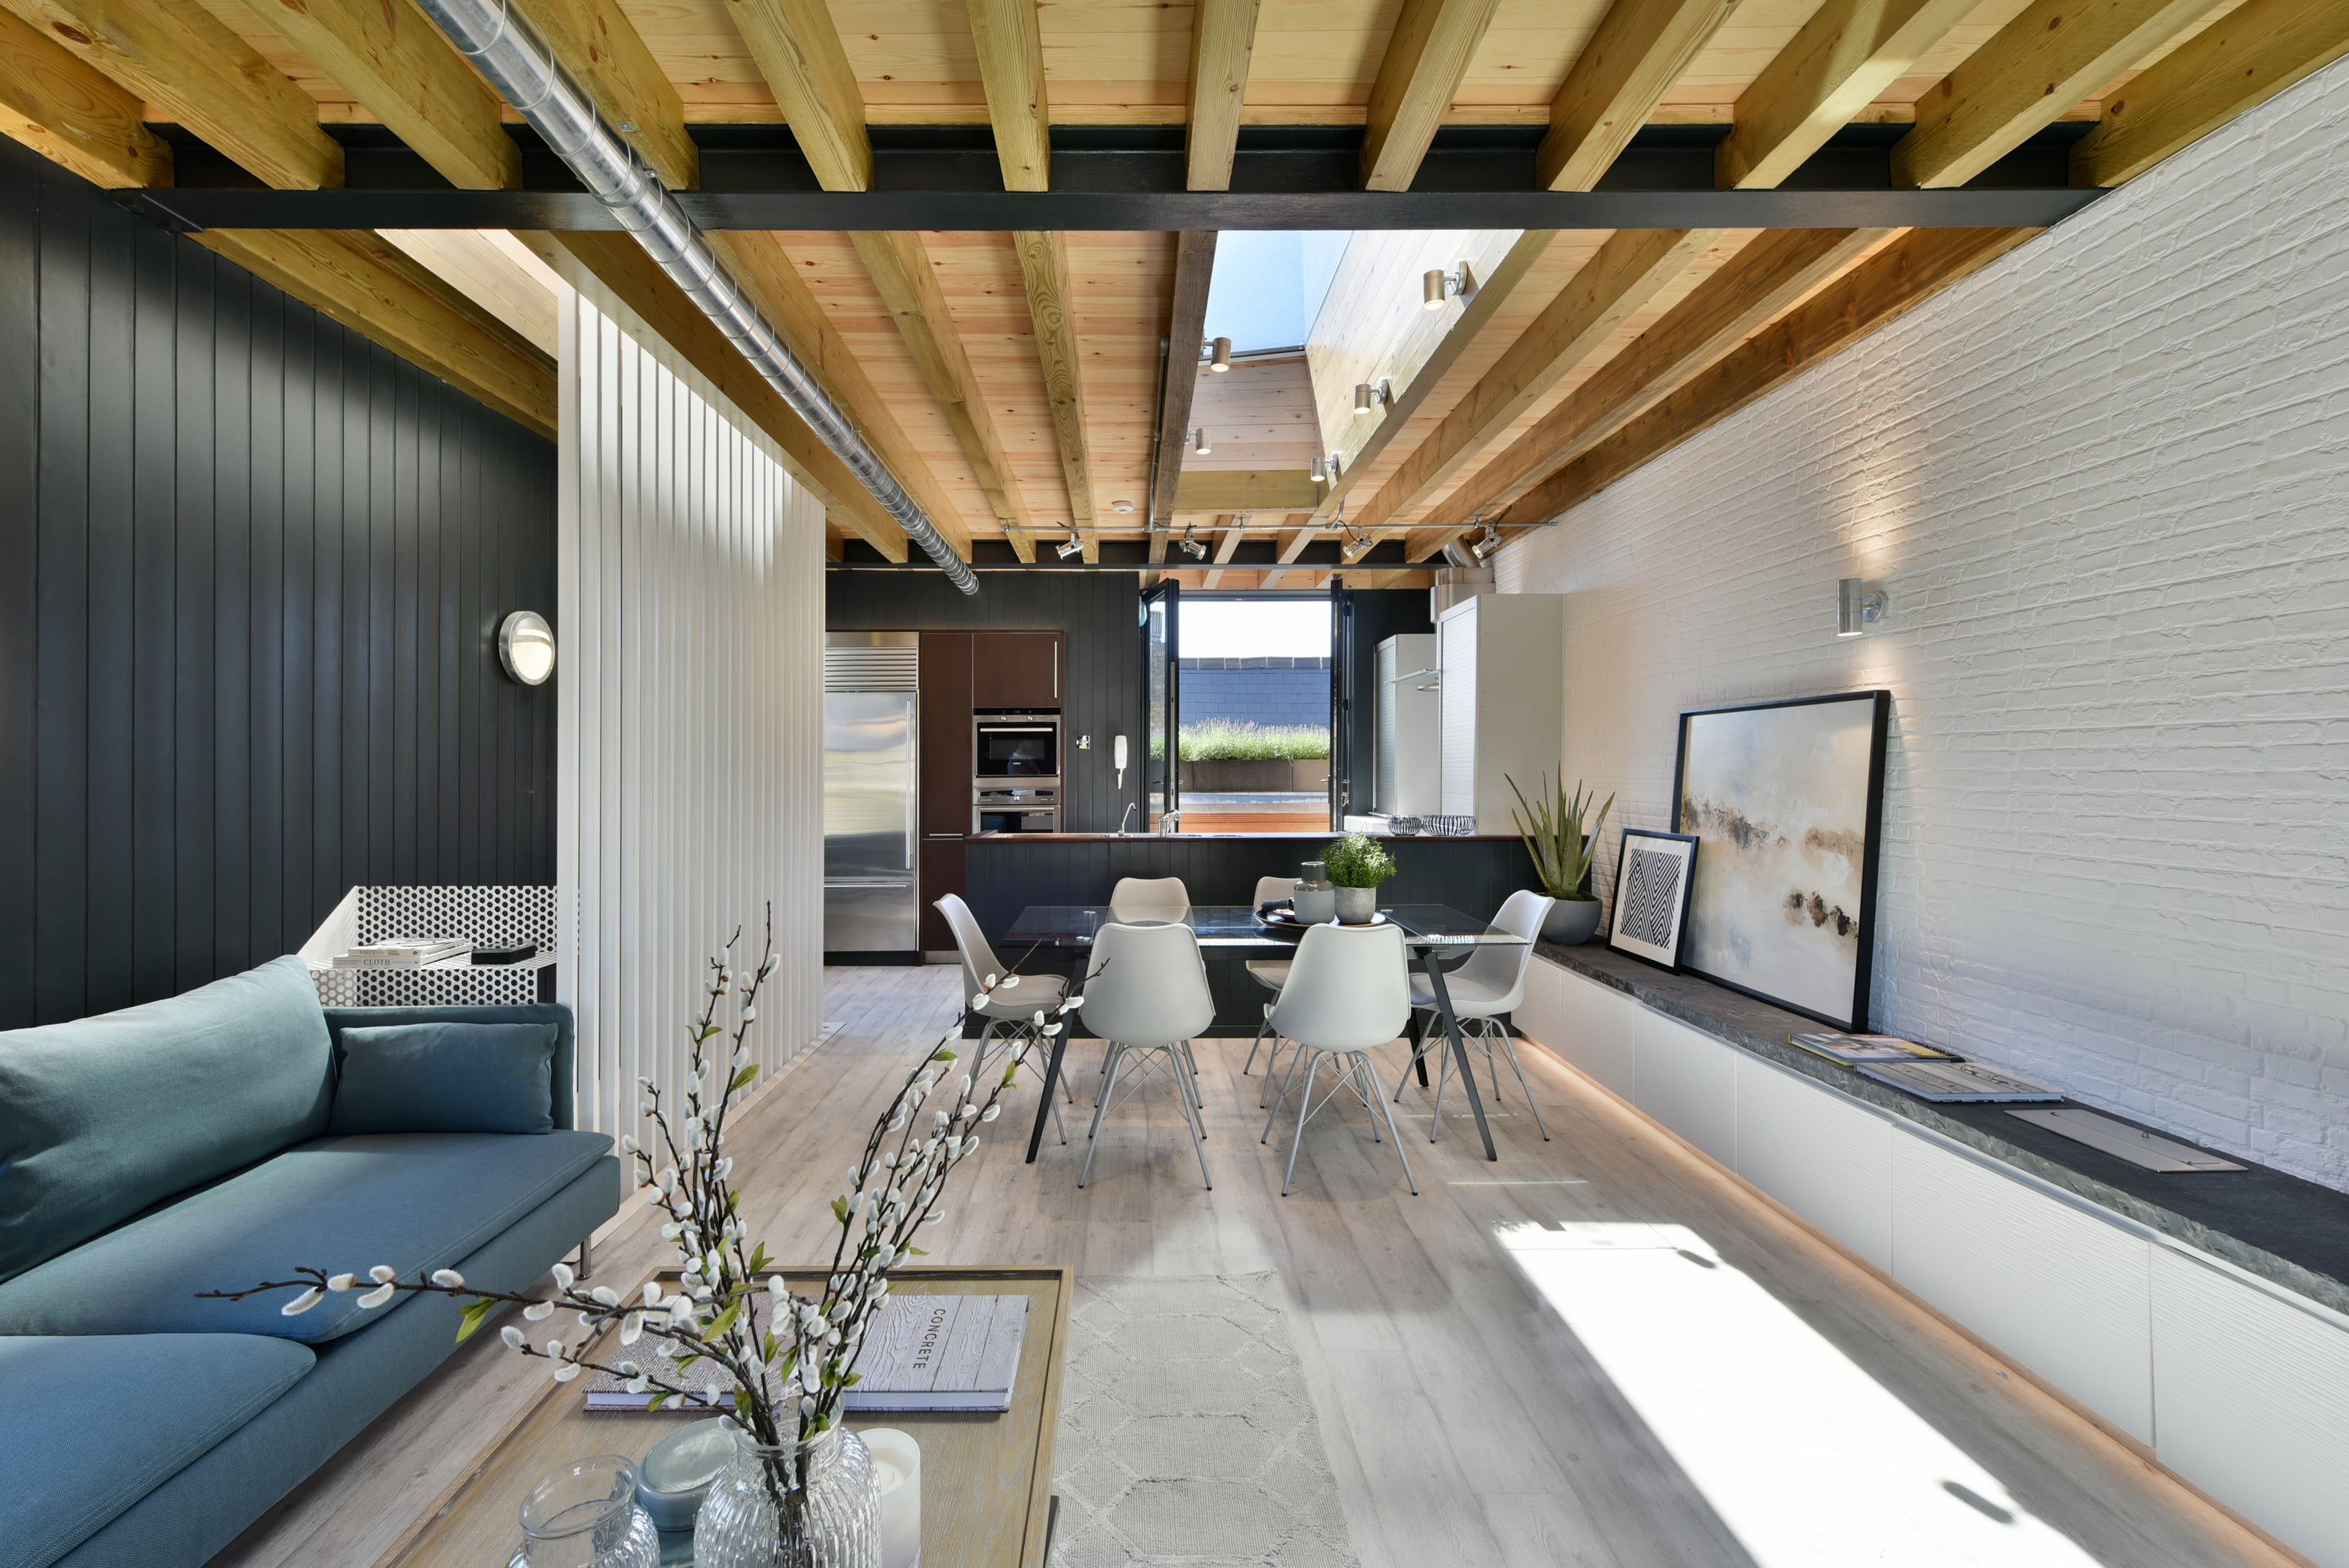 </p> <p>Find your ideal home design pro on designfor-me.com - get matched and see who's interested in your home project. Click image to see more inspiration from our design pros</p> <p>Design by Ian, architect from Kensington and Chelsea, London</p> <p>#architecture #homedesign #modernhomes #homeinspiration #skylights #rooflights #selfbuilds #selfbuildinspiration #selfbuildideas #granddesigns </p> <p>